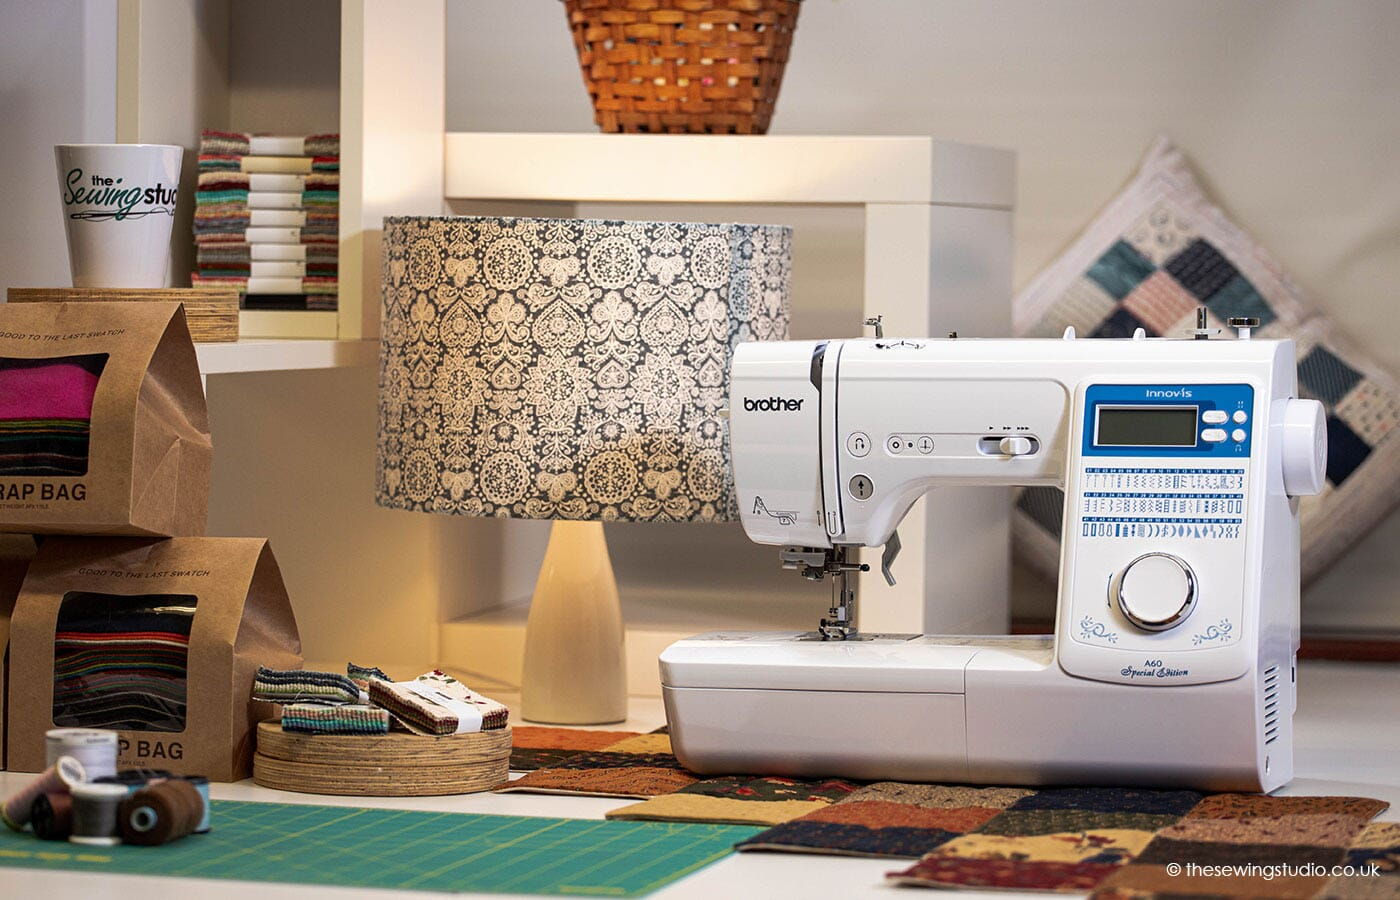 Brother Innov-is A60SE Sewing Machine in a Sewing Room